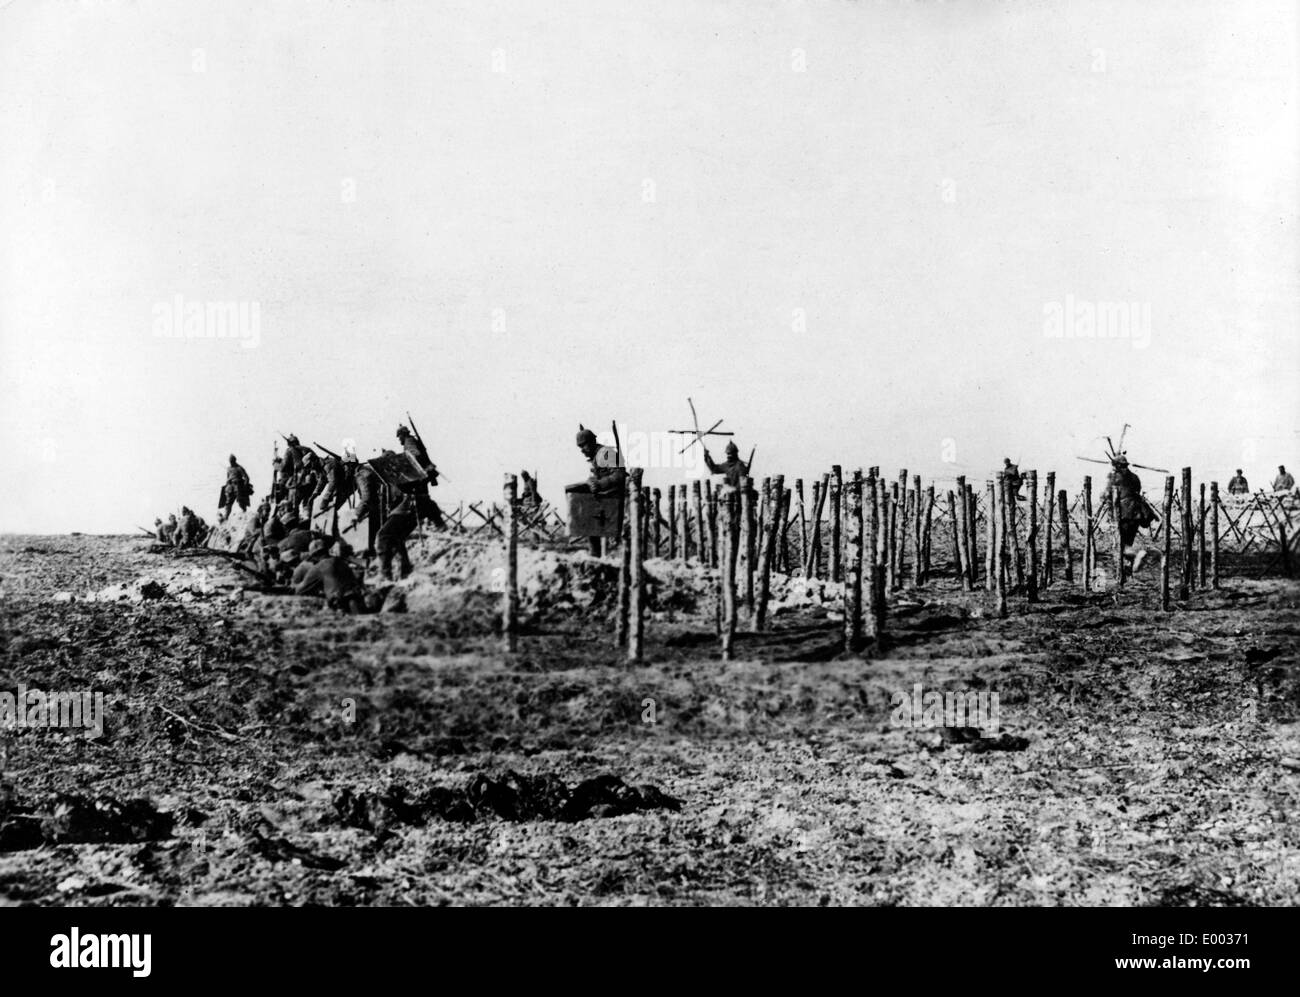 German Army Trenches Stock Photos & German Army Trenches Stock ...